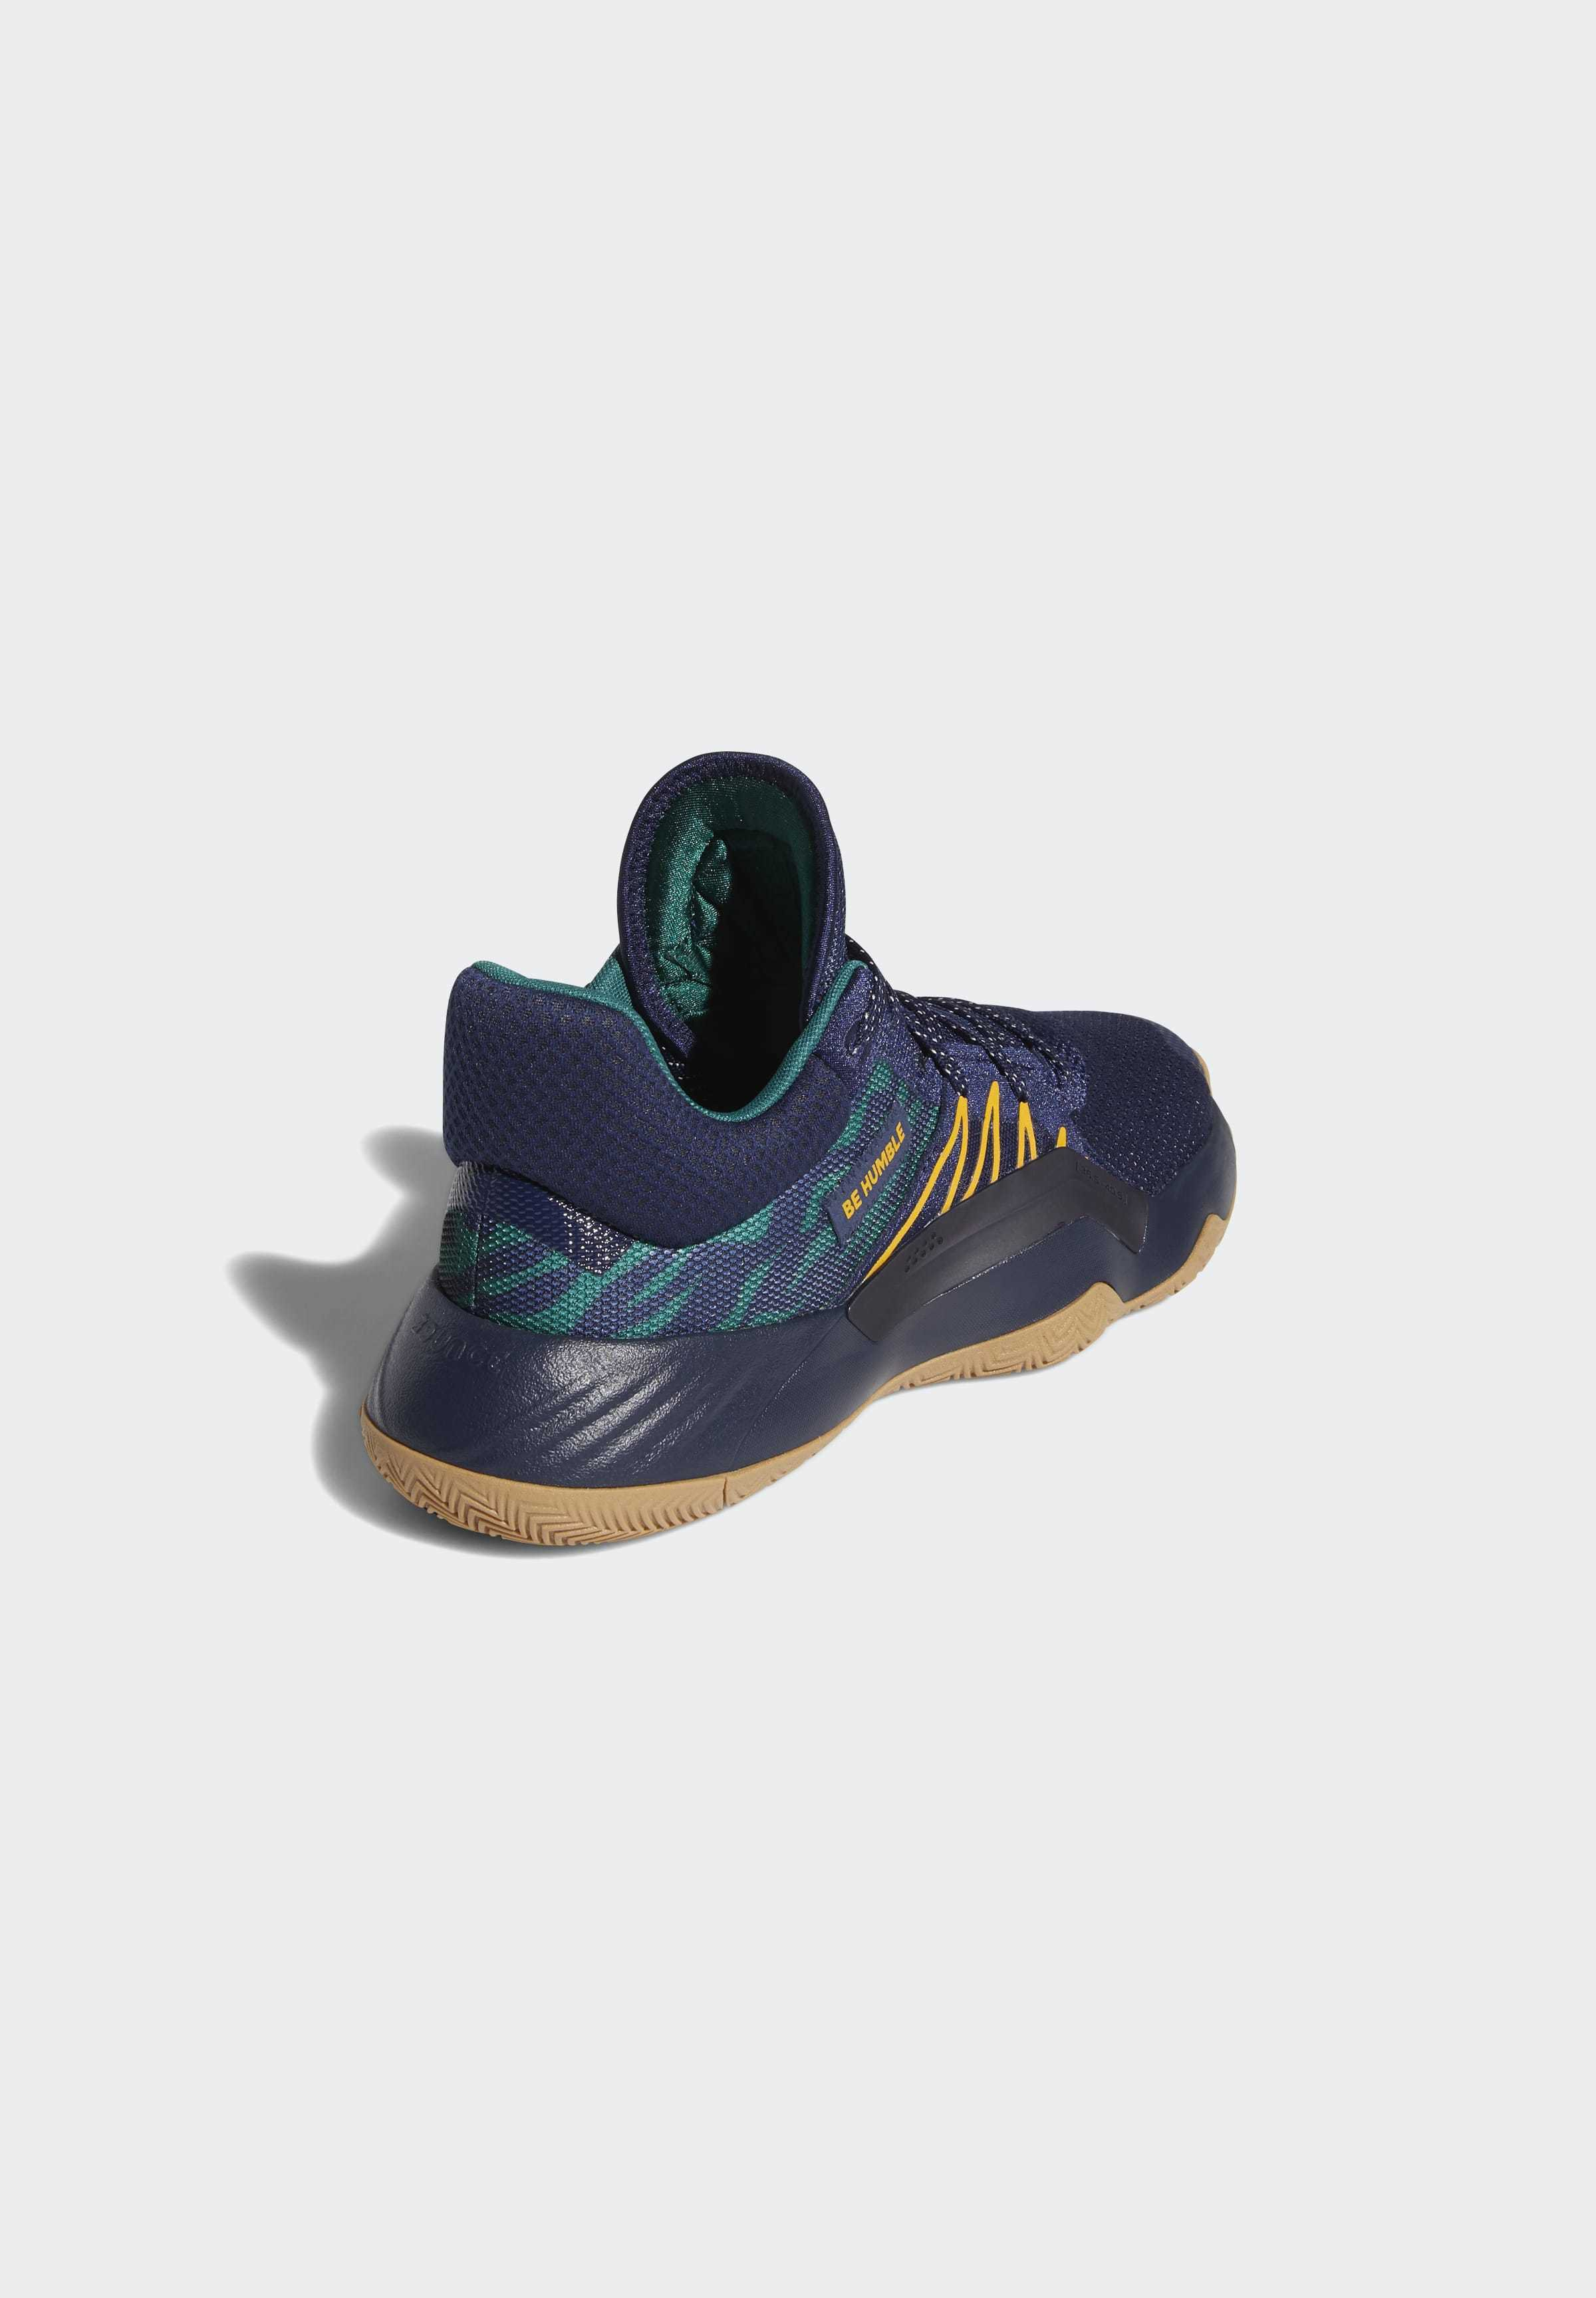 adidas Performance D.O.N. ISSUE 1 SHOES - Basketballschuh - blue/blau - Herrenschuhe enbg6